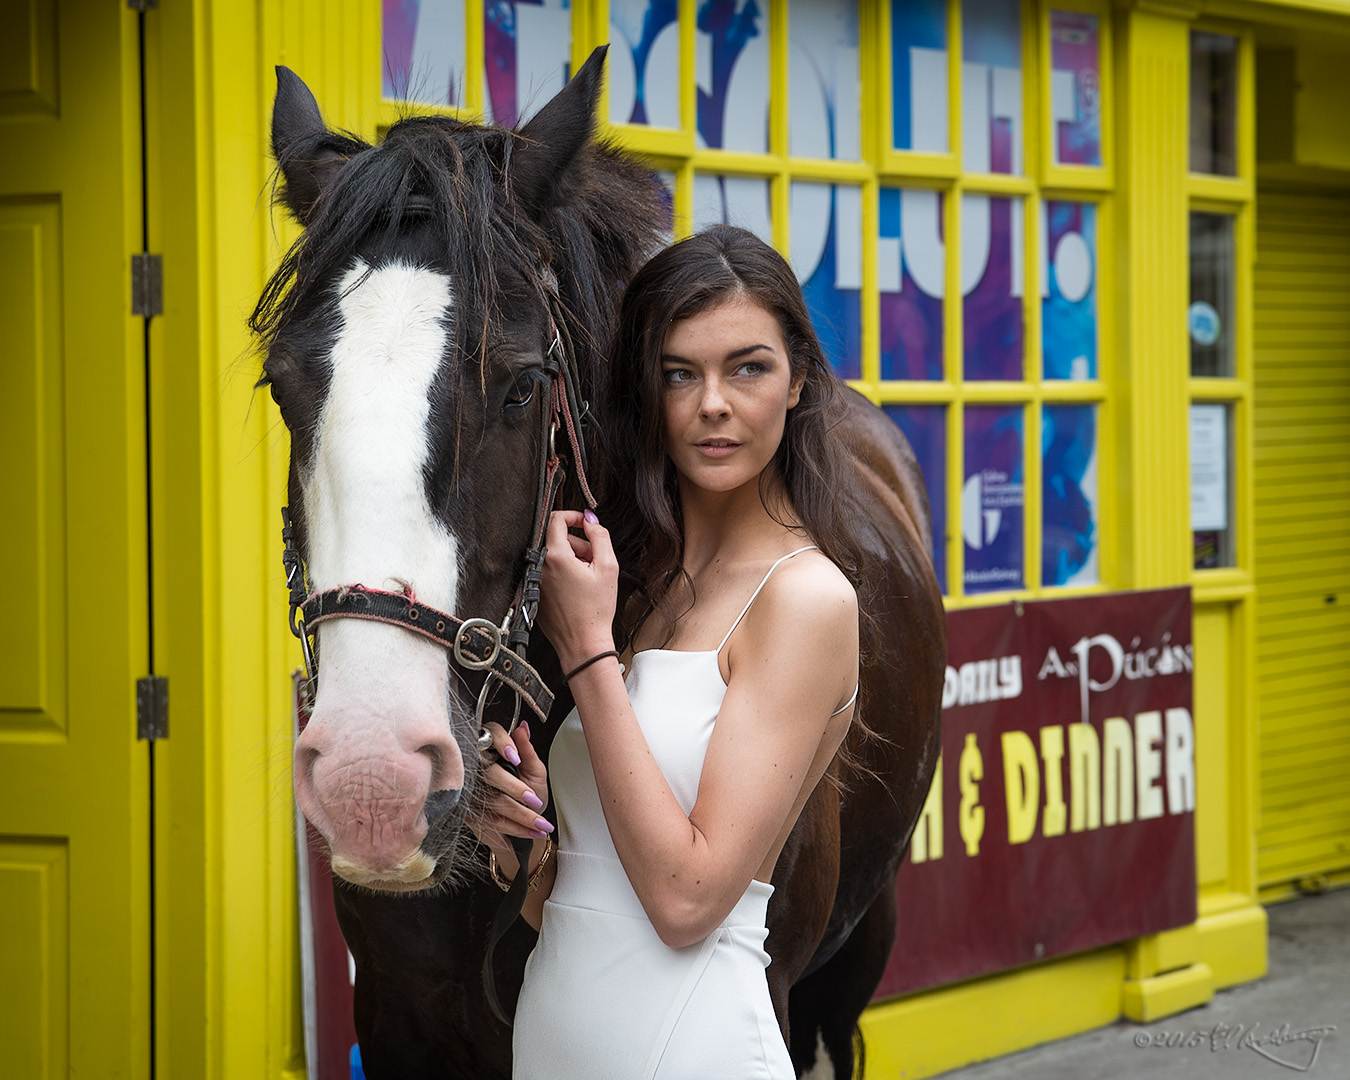 Model_and_Clydesdale_1